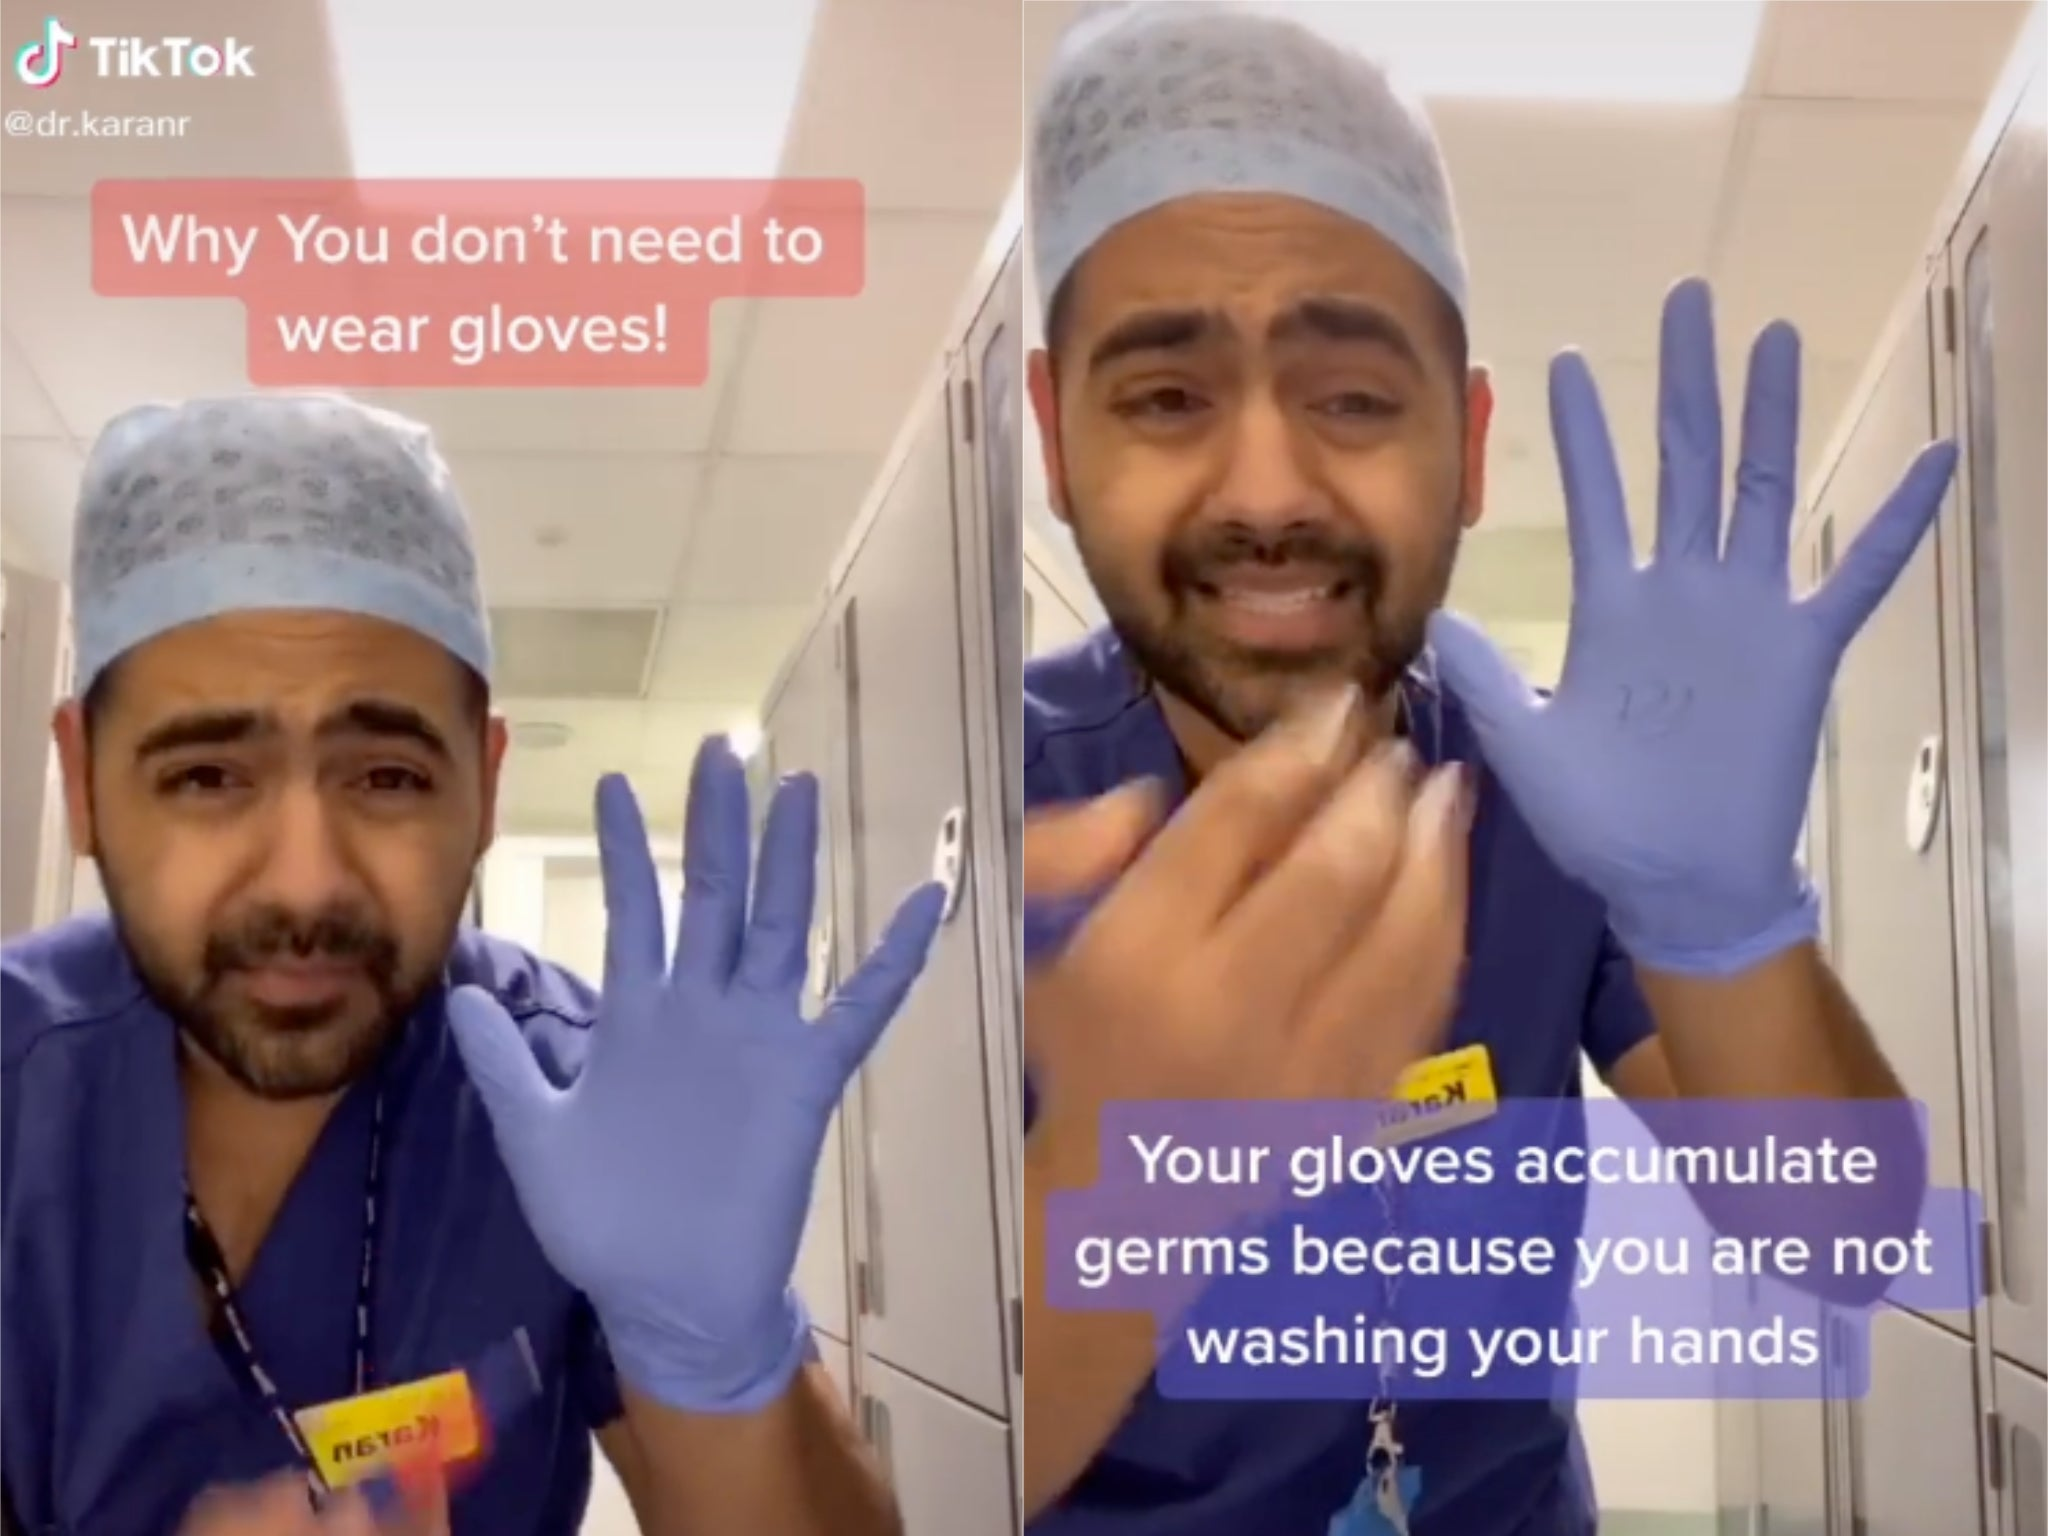 Coronavirus: NHS doctor shows how wearing gloves when you go out could spread germs